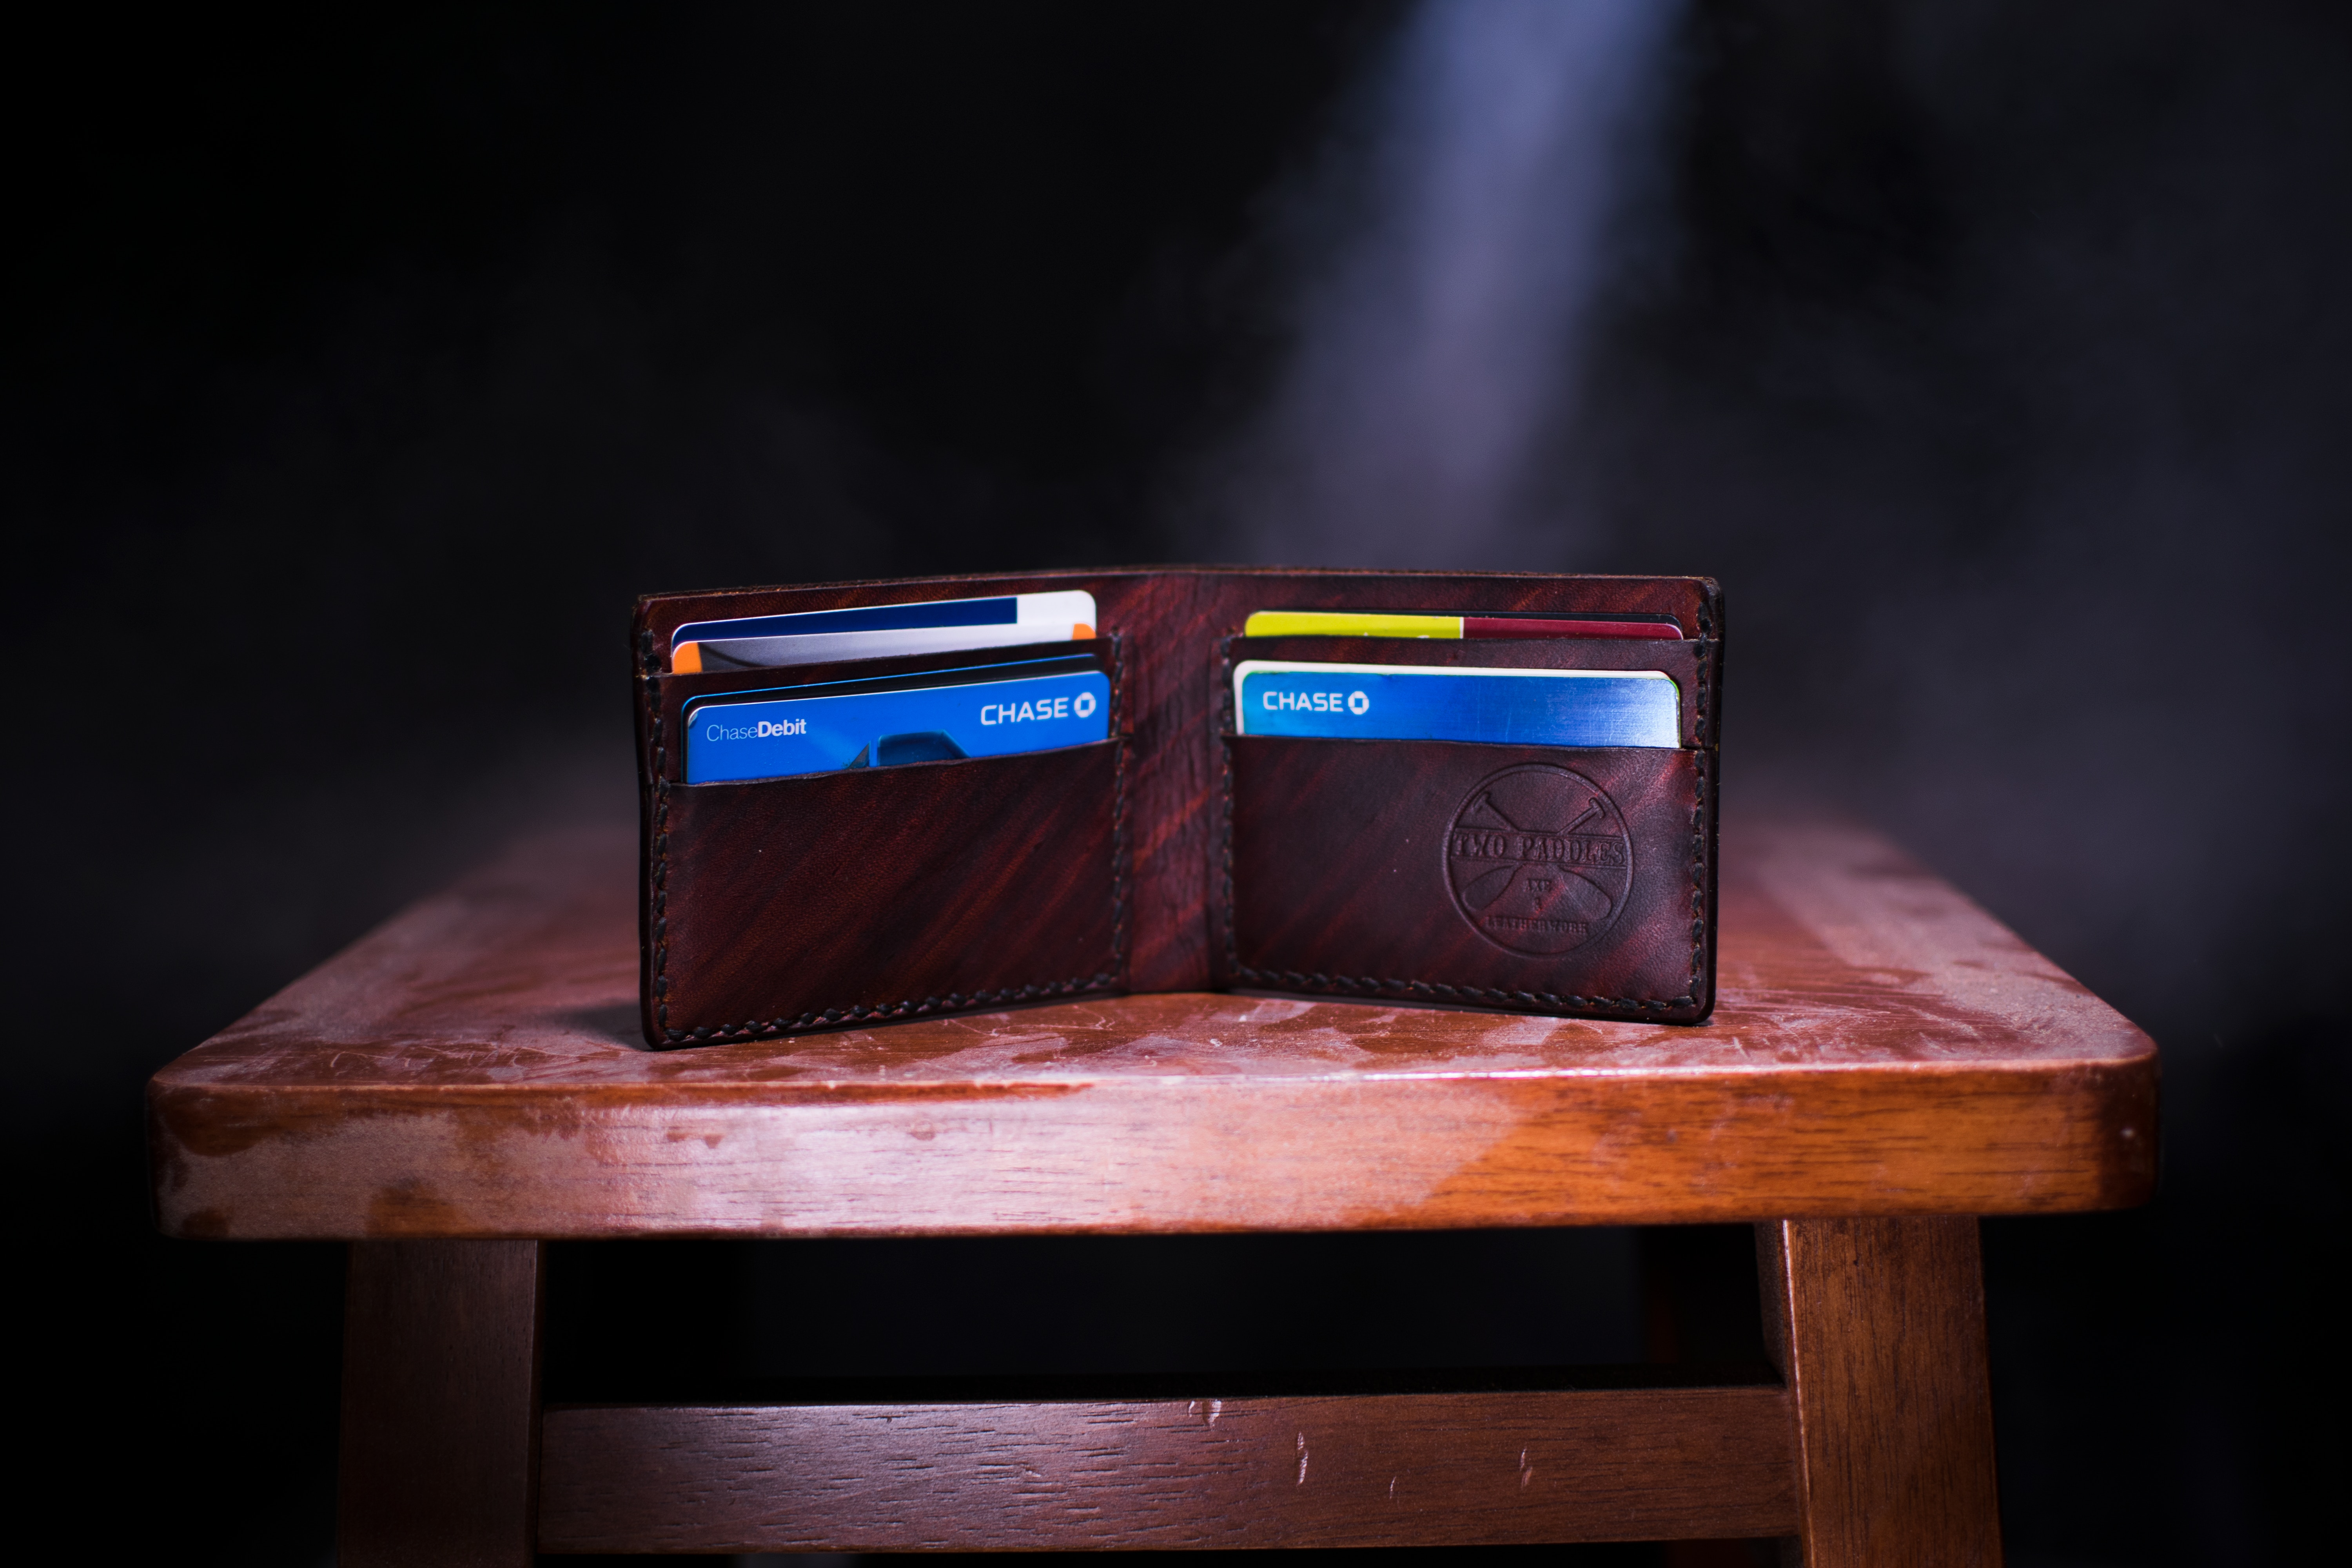 Set of credit cards